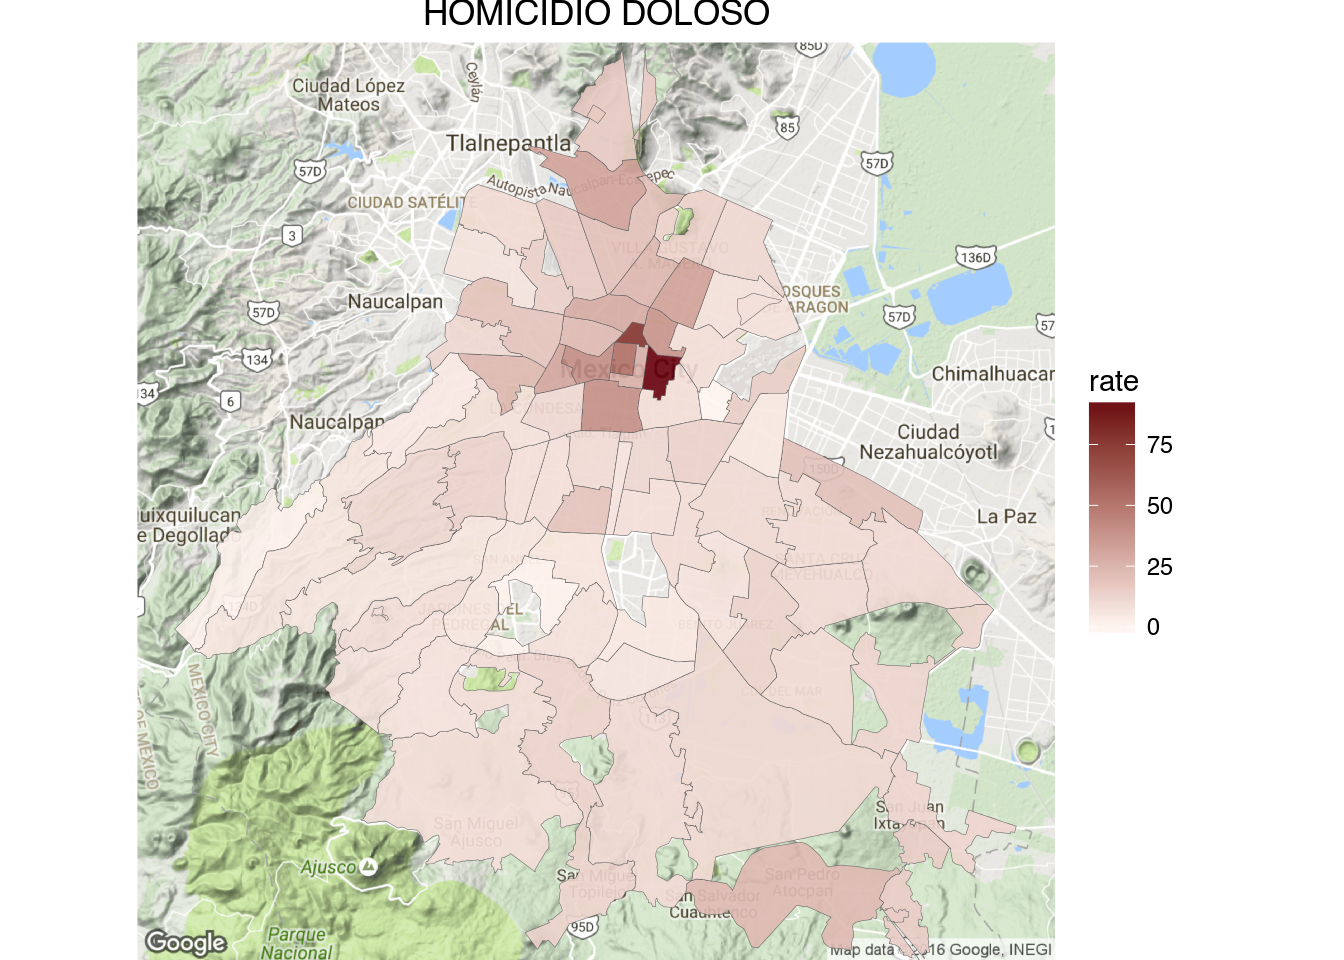 Mexico Map Mexico City.How To Create Crime Maps Of Mexico City